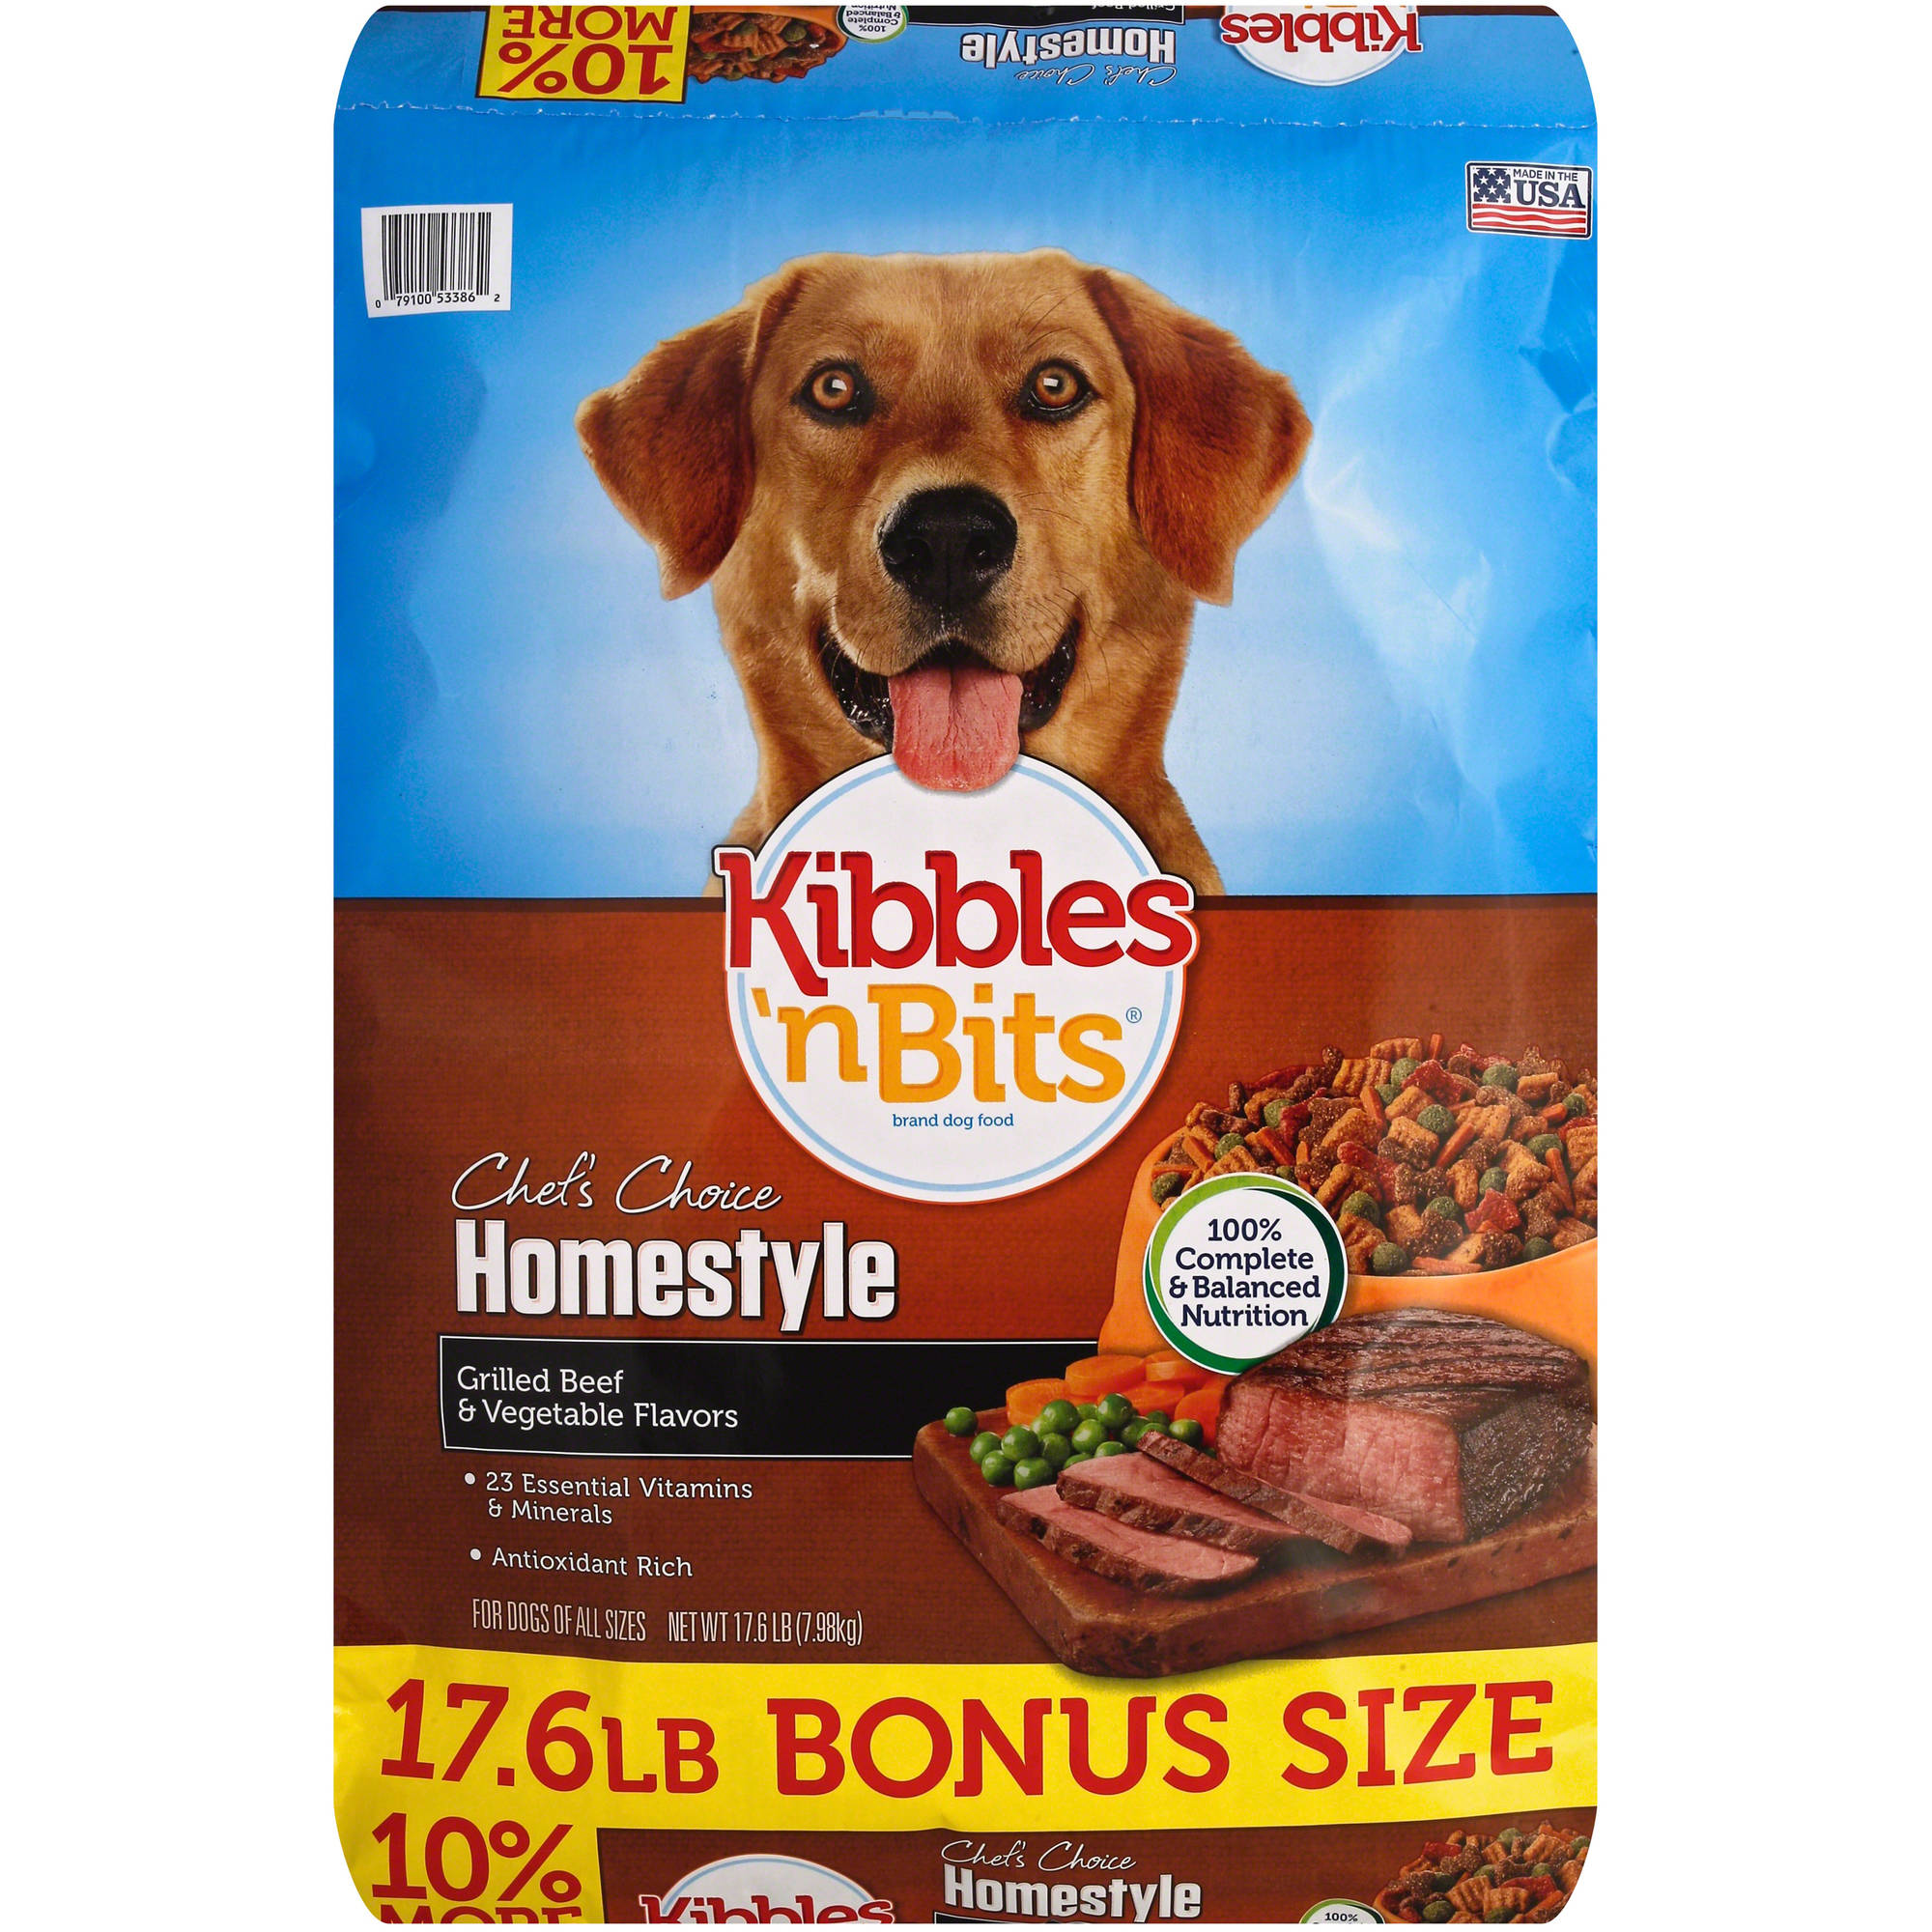 Kibbles 'n Bits Homestyle Grilled Beef and Vegetable Flavors Dry Dog Food, 17.6-lb Bag